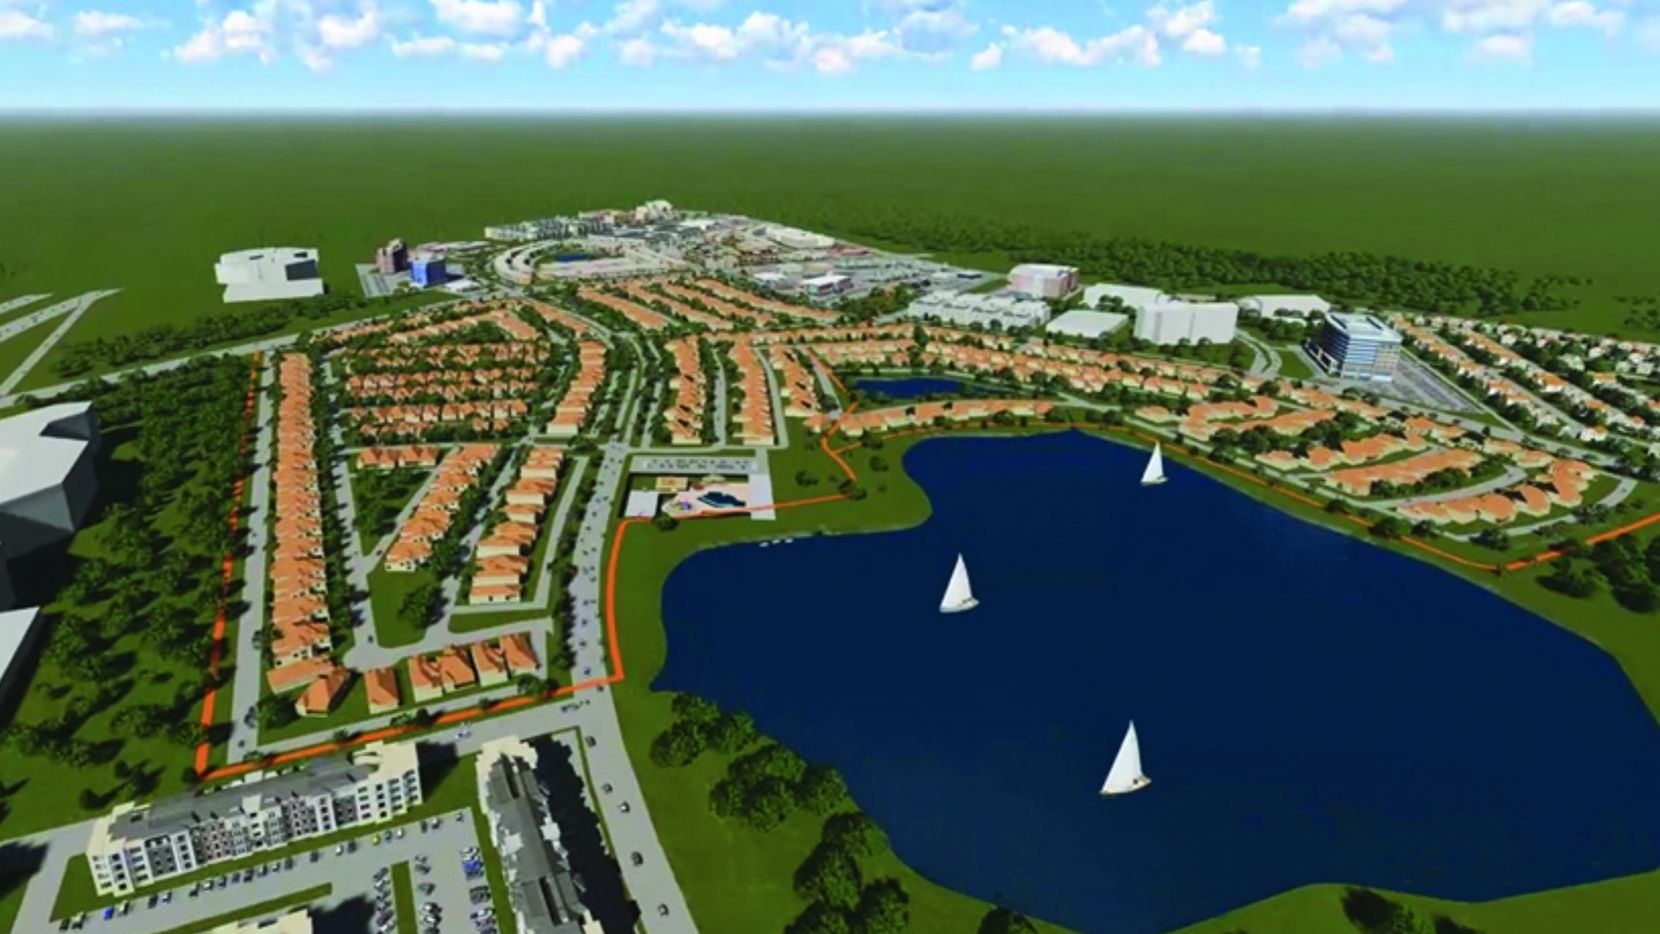 Th 370-acre Mercer Crossing mixed-use development is north of LBJ Freeway in Farmers Branch. (Centurion American Development)